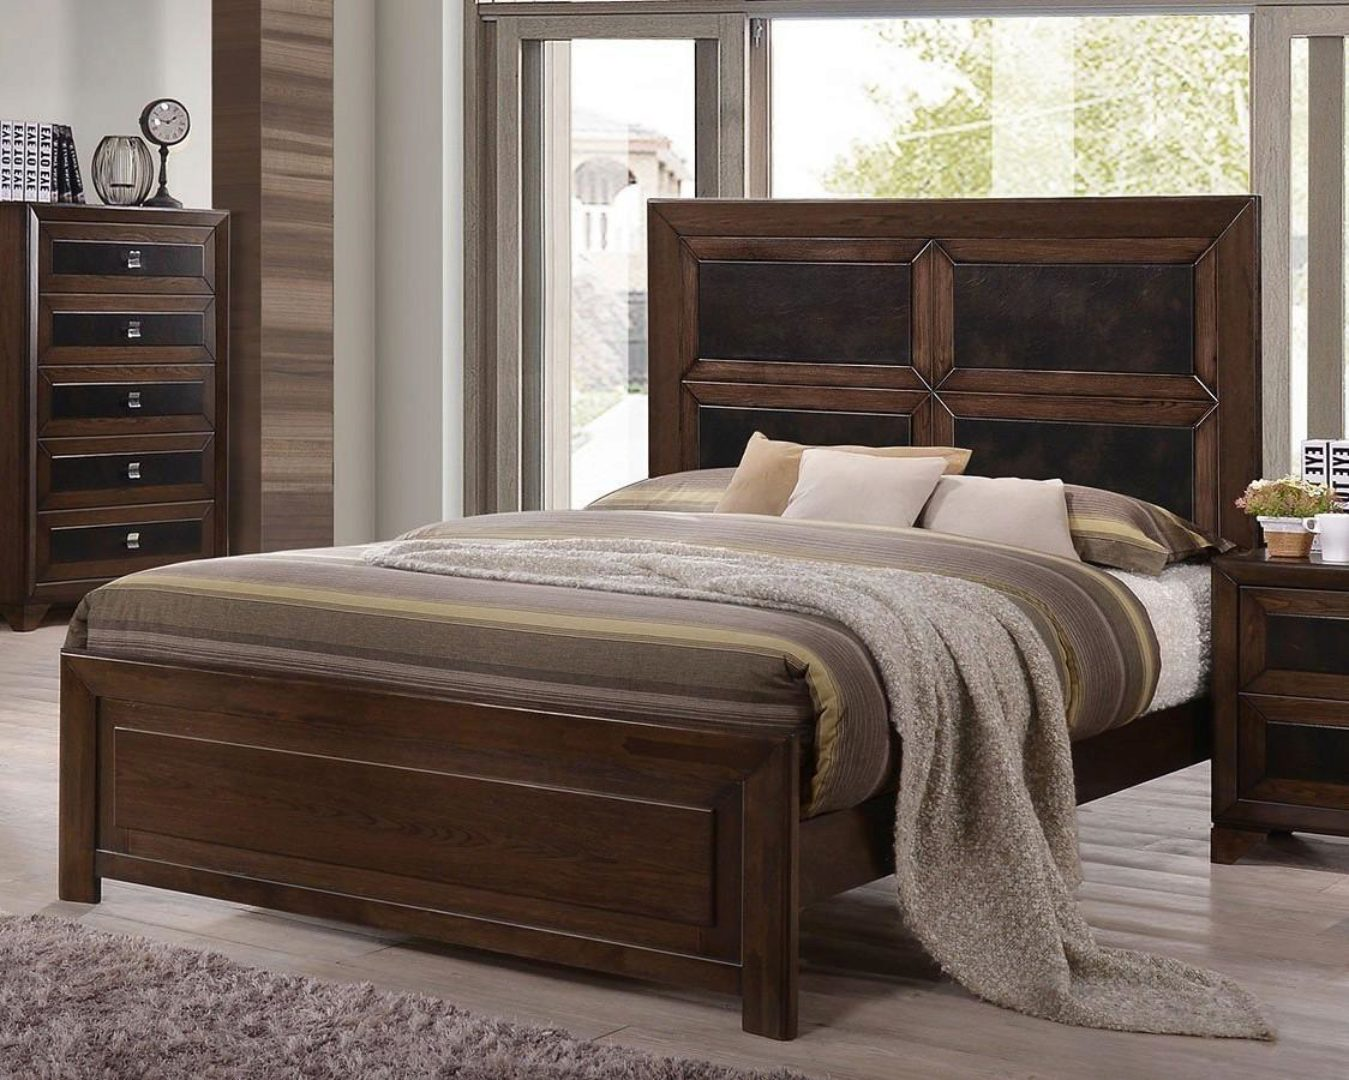 crown mark b6950 sussex rich wood finish solid wood king